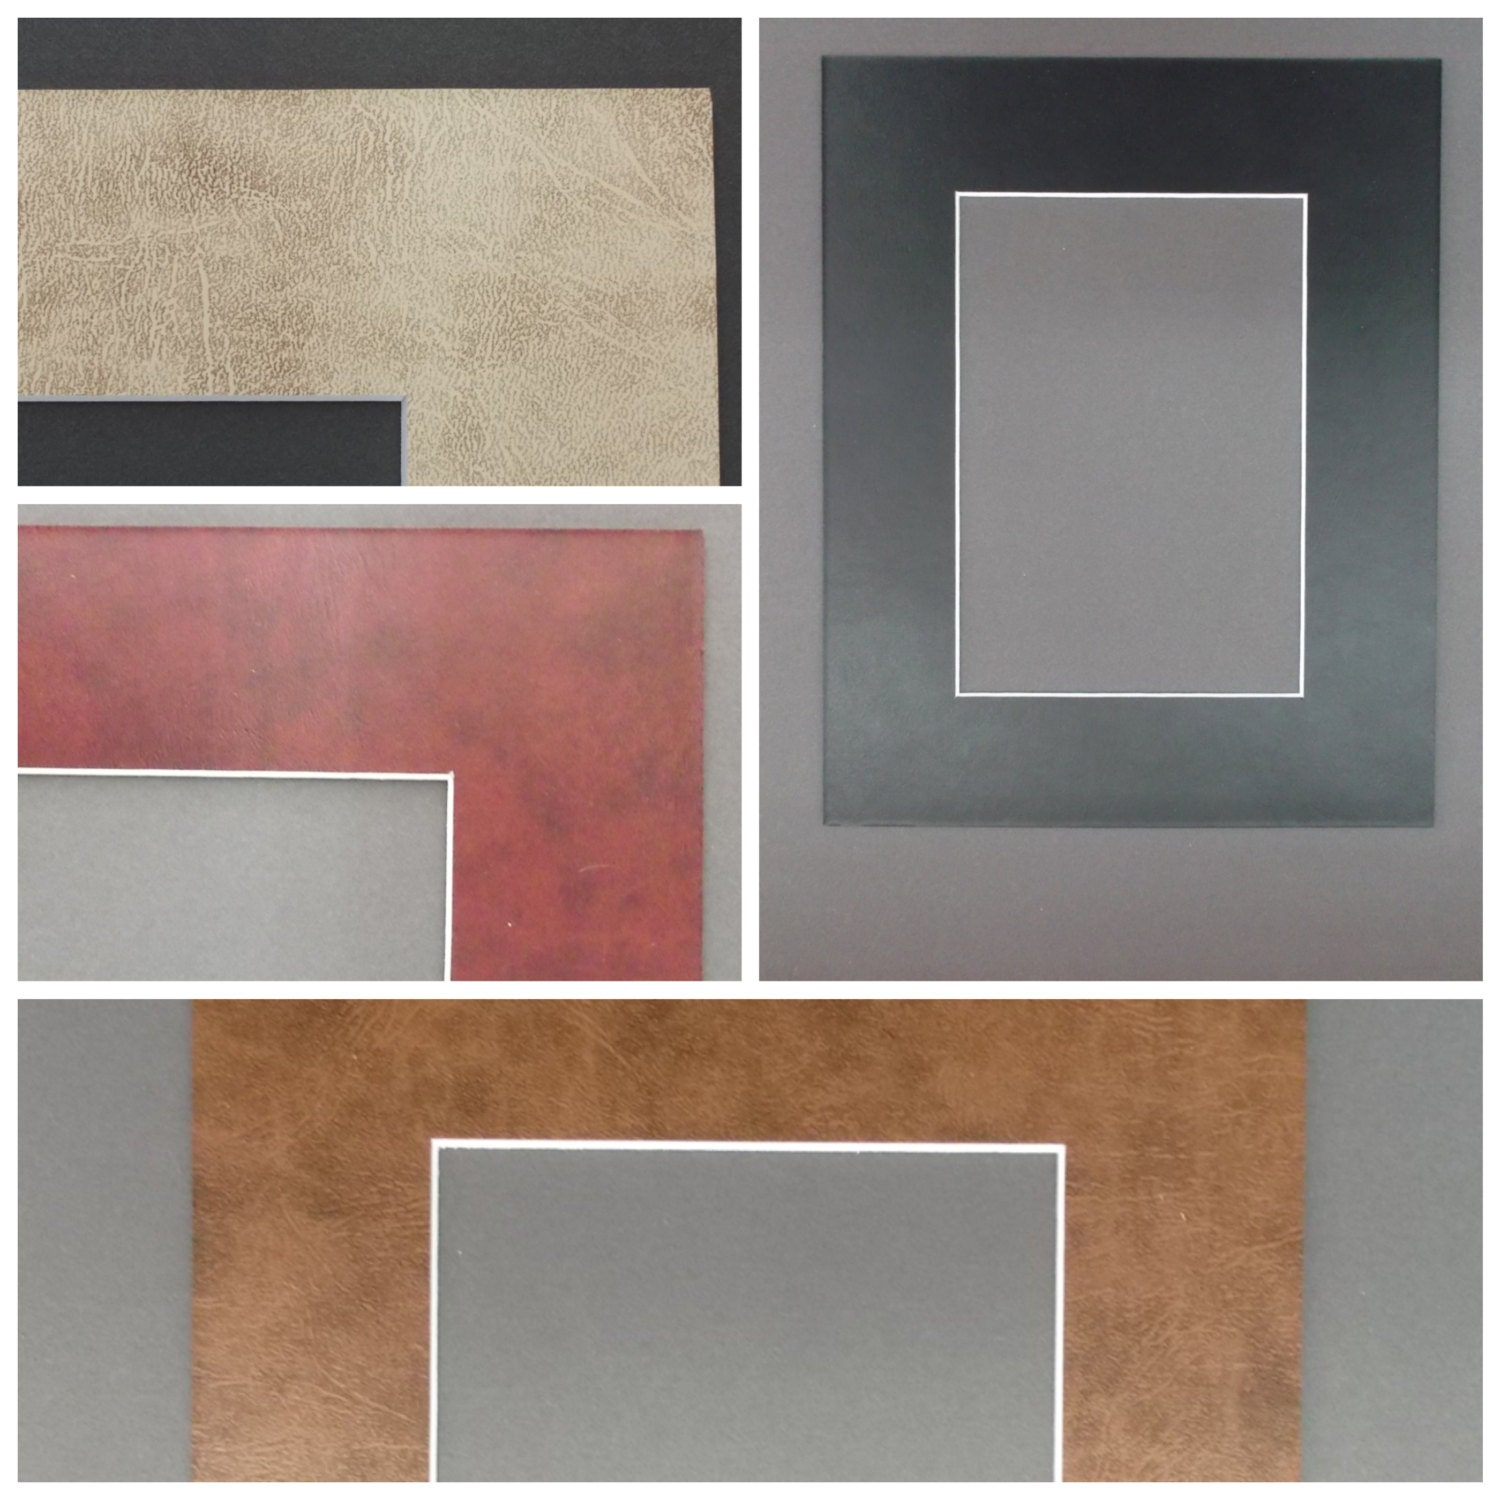 16x20 Leather Look Picture Mats With White Core Bevel Cut